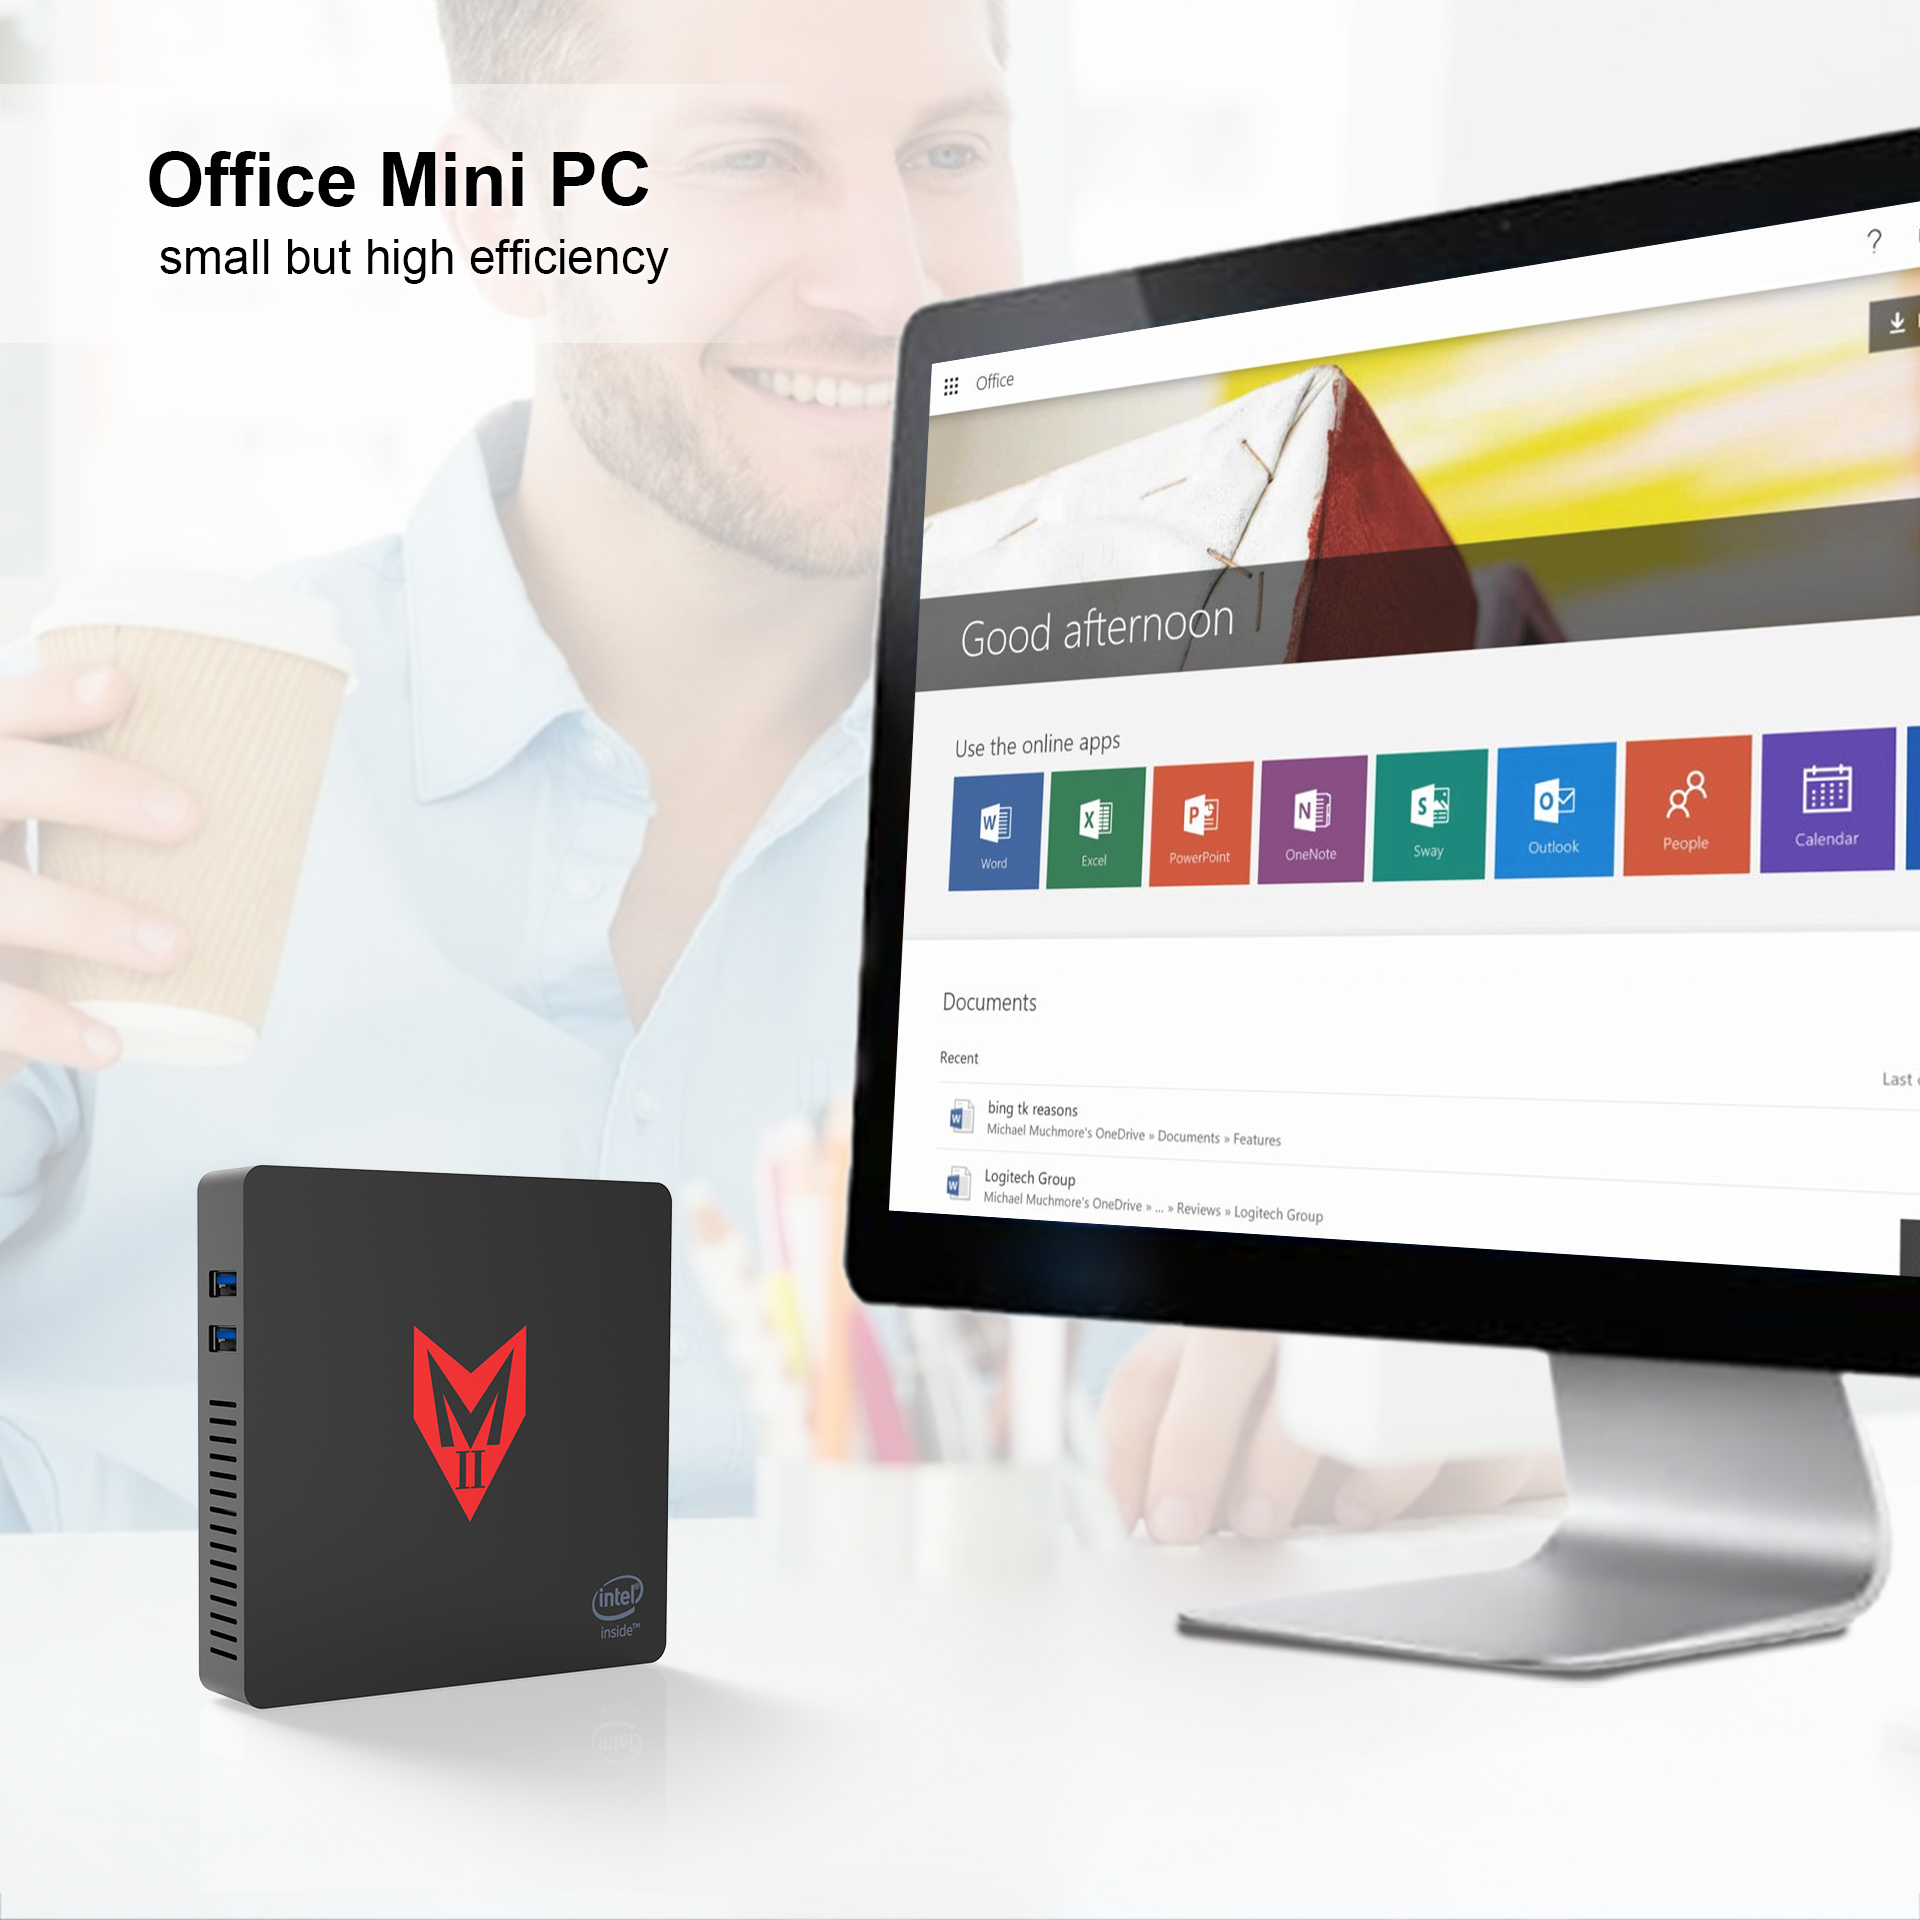 2019 MINI PC WIN10 Model MII-V Top Selling MII VER 1 Processor J3355 HD Graphics 500 4GB+64G BT 4.0 MINI PC